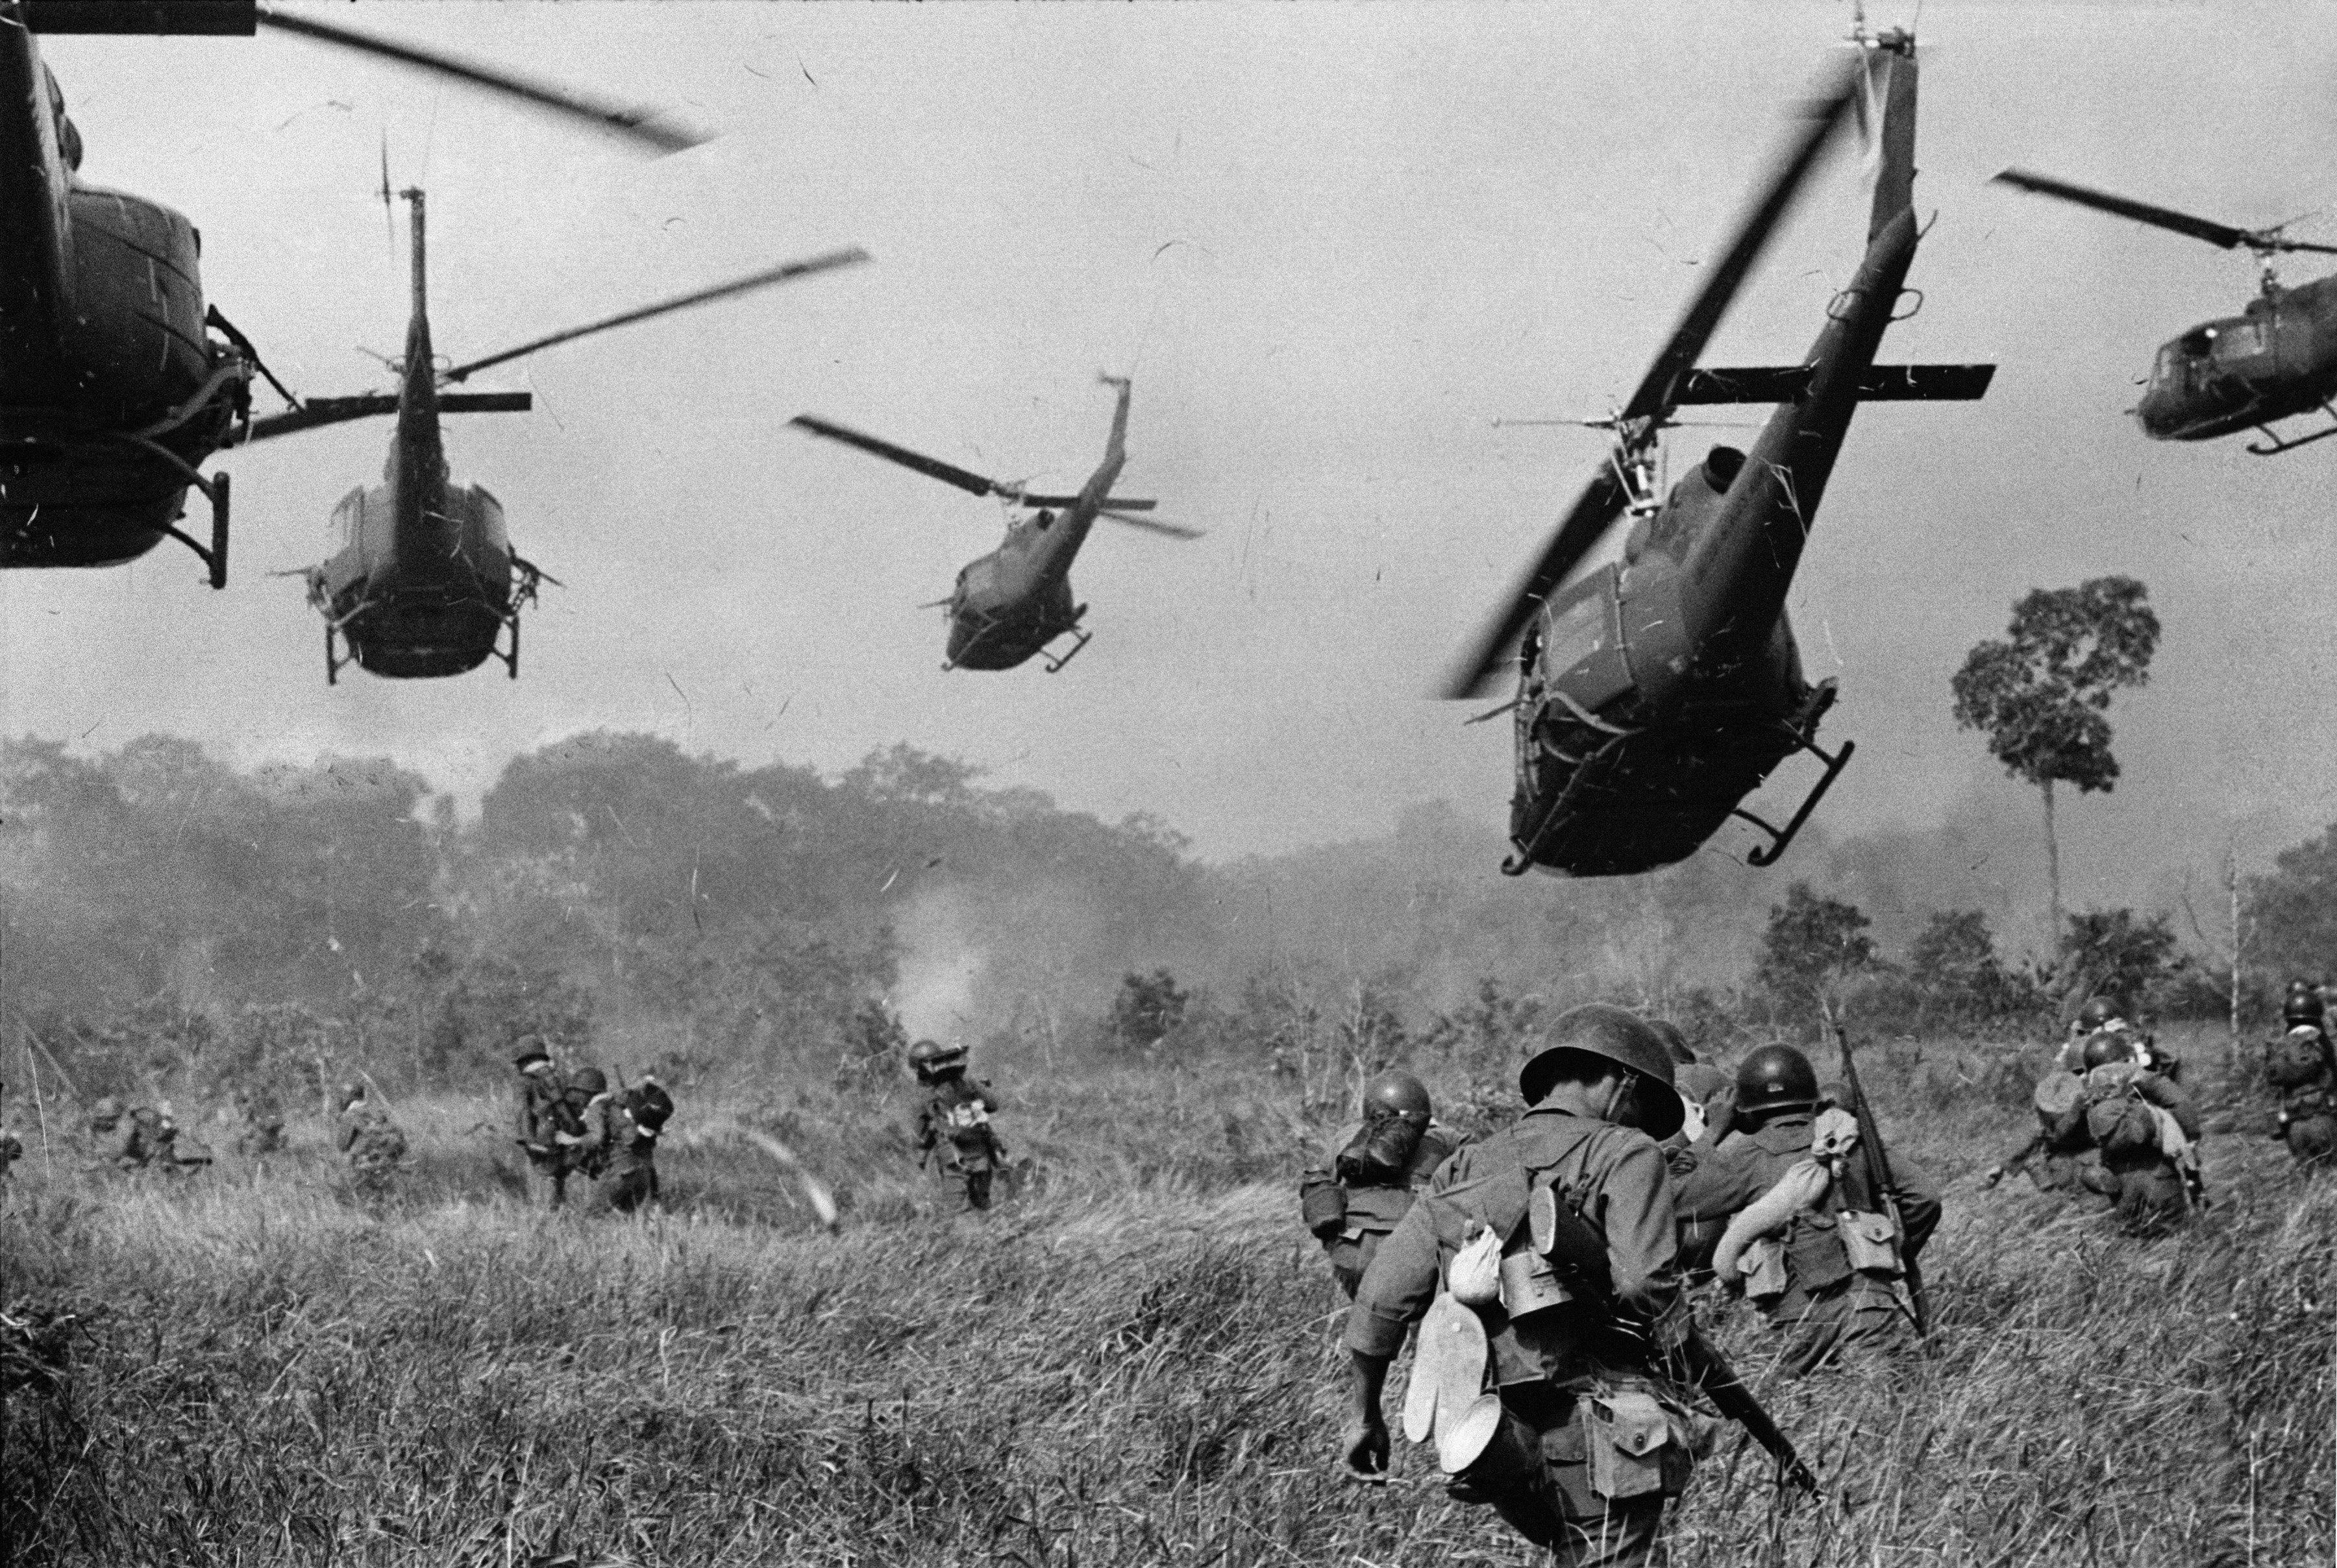 U.S. Army helicopters pour machine gun fire into the tree line to cover the advance of South Vietnamese ground troops in an attack on a Viet Cong camp 18 miles north of Tay Ninh, northwest of Saigon, March 1965.